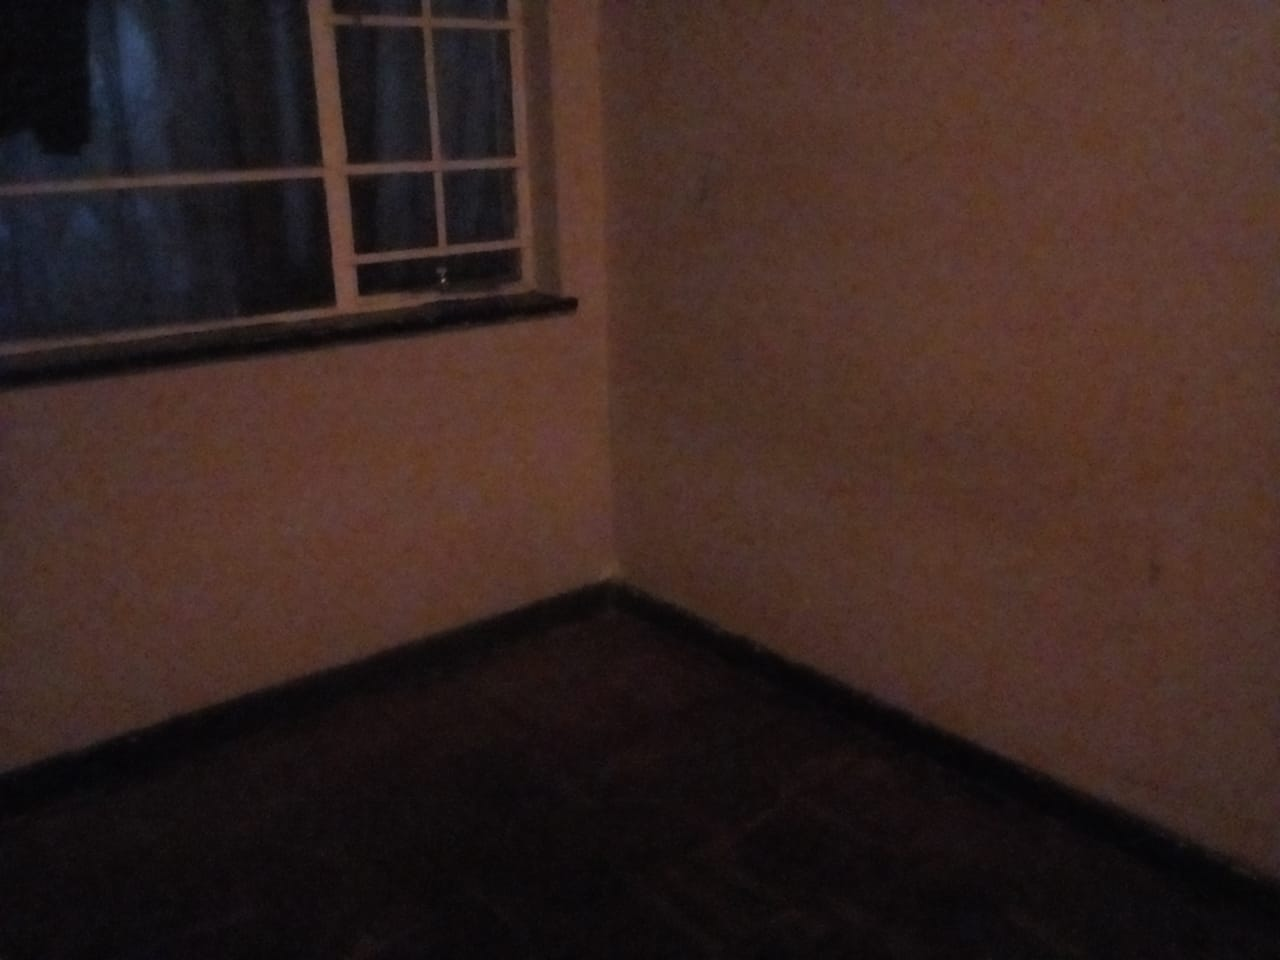 Apartment in Berea & Surrounds - WhatsApp Image 2021-07-21 at 5.37.51 PM.jpeg